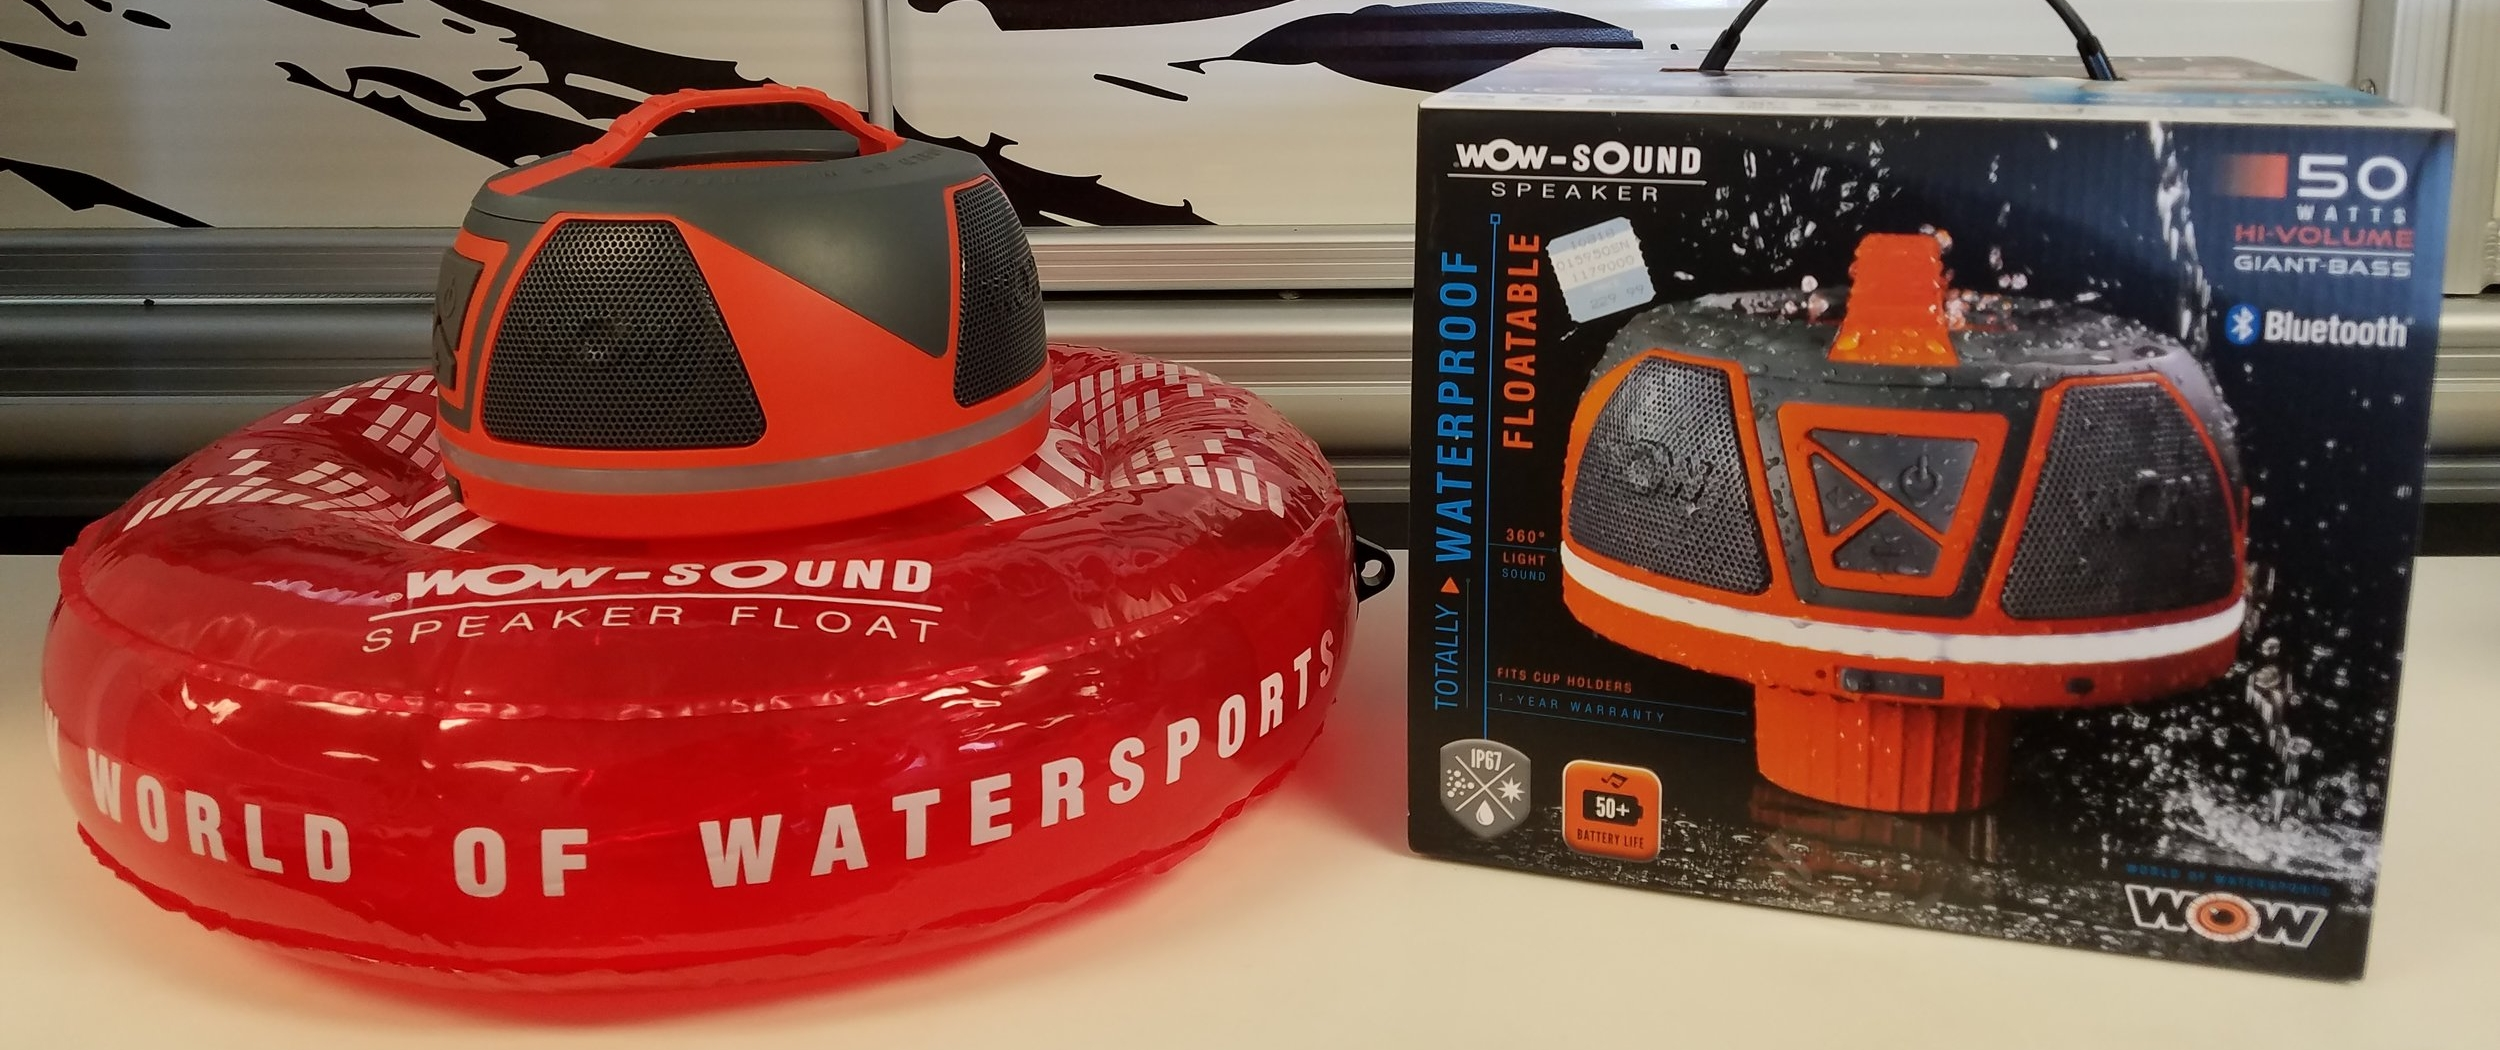 CHECK OUT THIS FLOTABLE AND TOTALLY WATERPROOF SOUND SPEAKER!